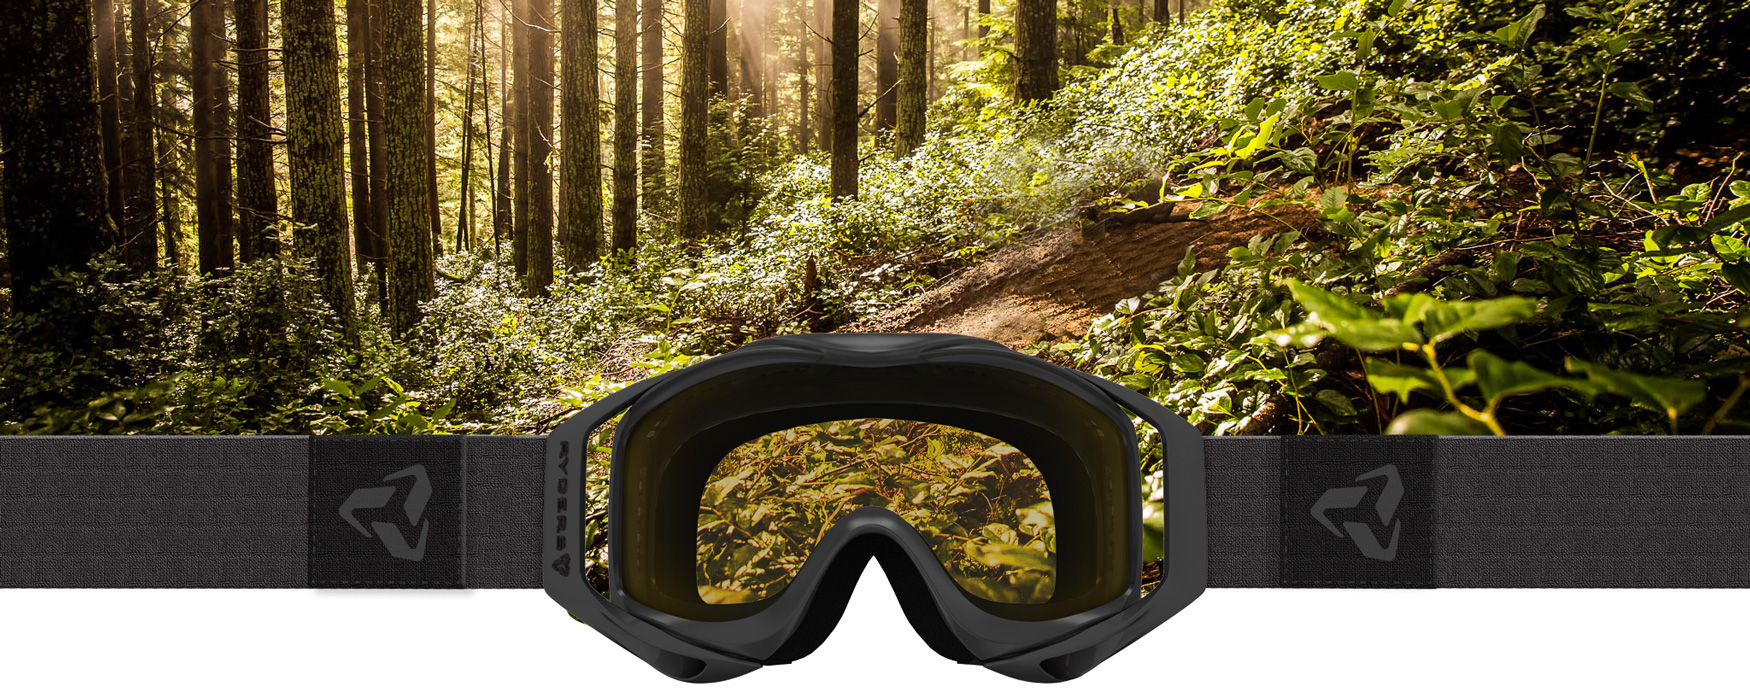 New NXT Varia antiFOG Tallcan Goggles! Perform at a Higher Level!